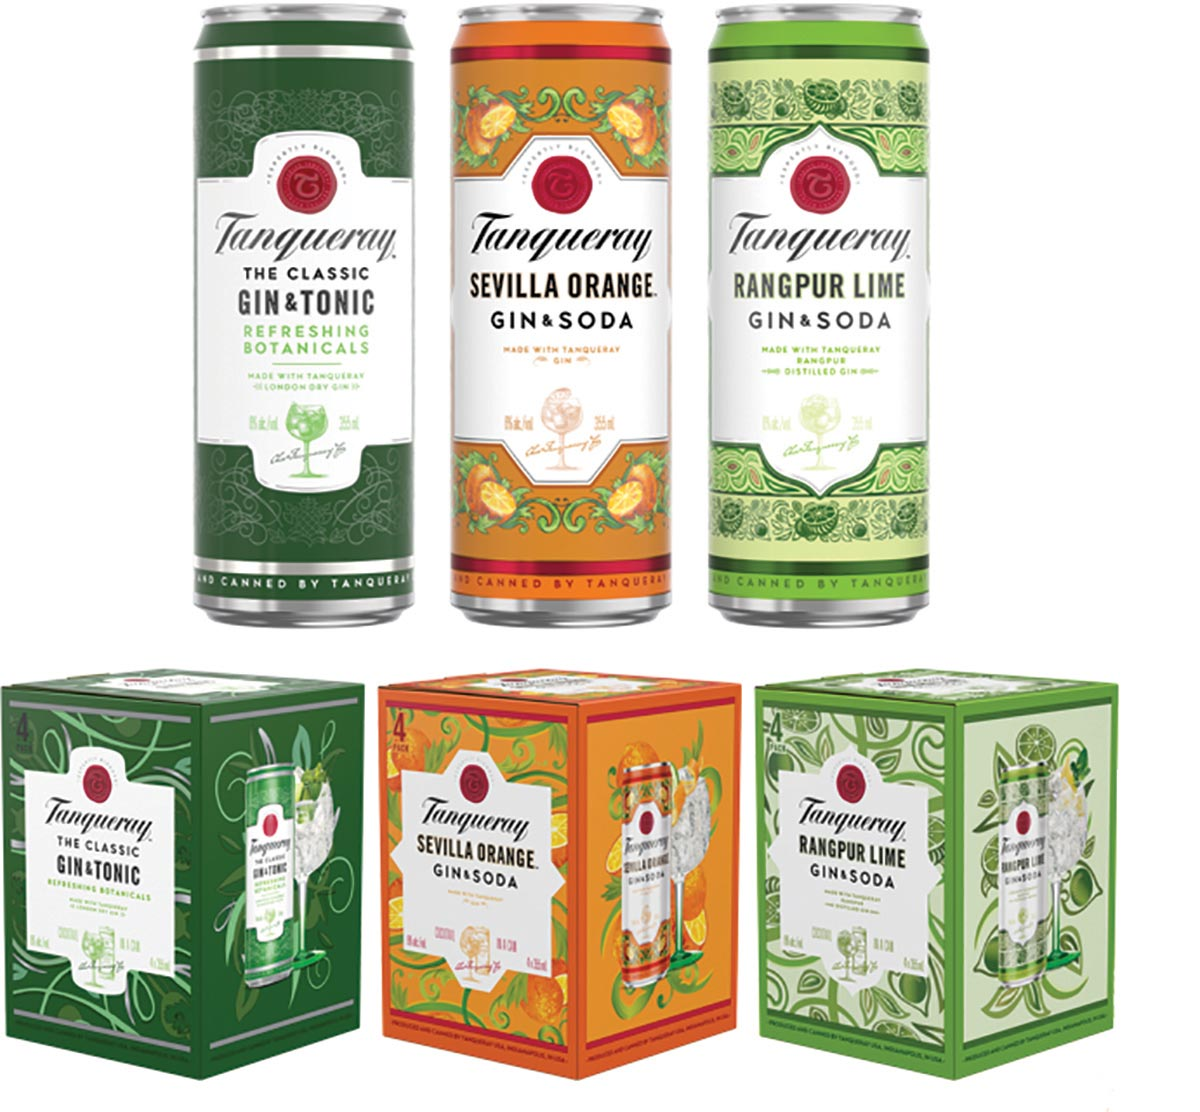 Mancini Beverage Welcomes Tanqueray Crafted Gin Cocktails